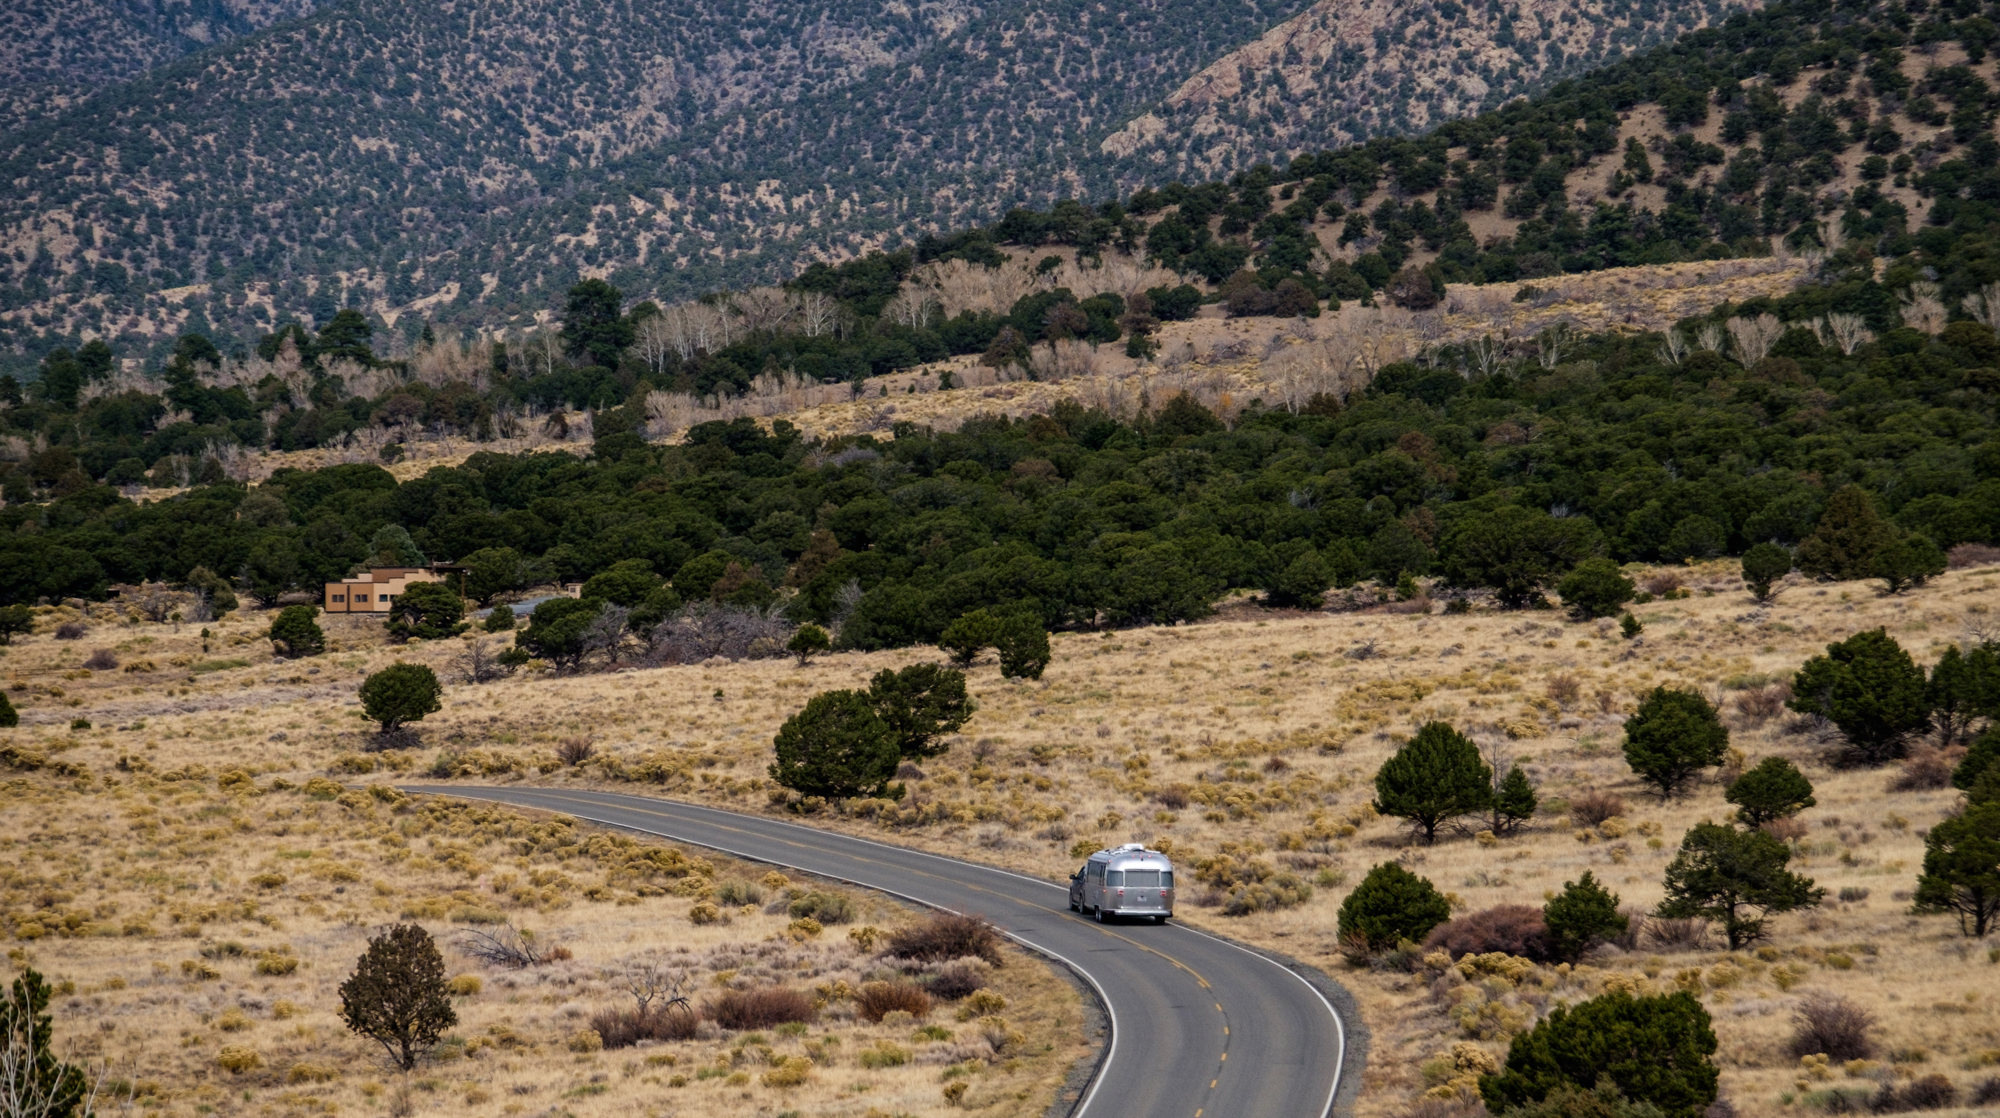 Wally on the road.  #LiveRiveted